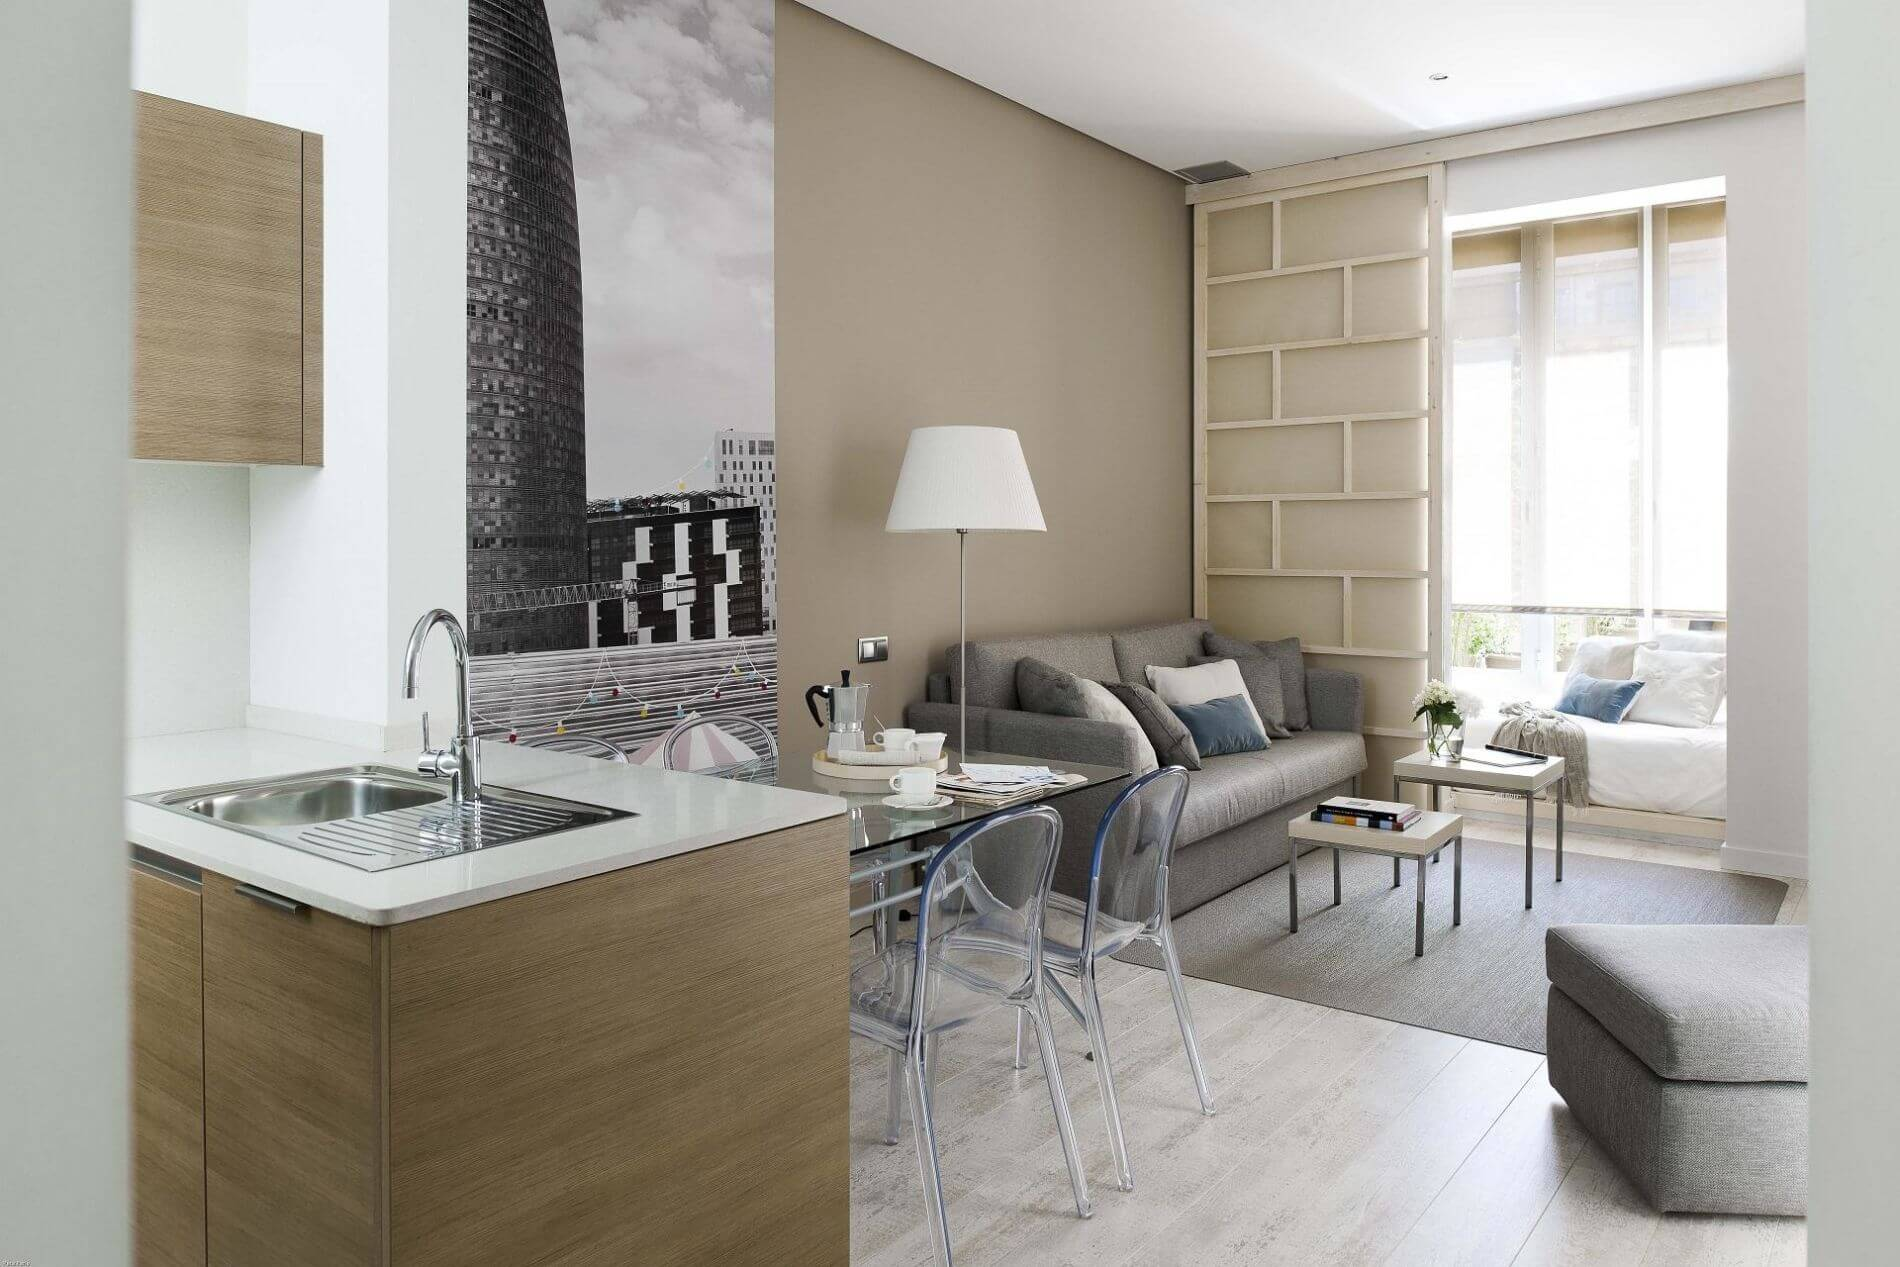 Fully equipped apartment in Barcelona that allows pets